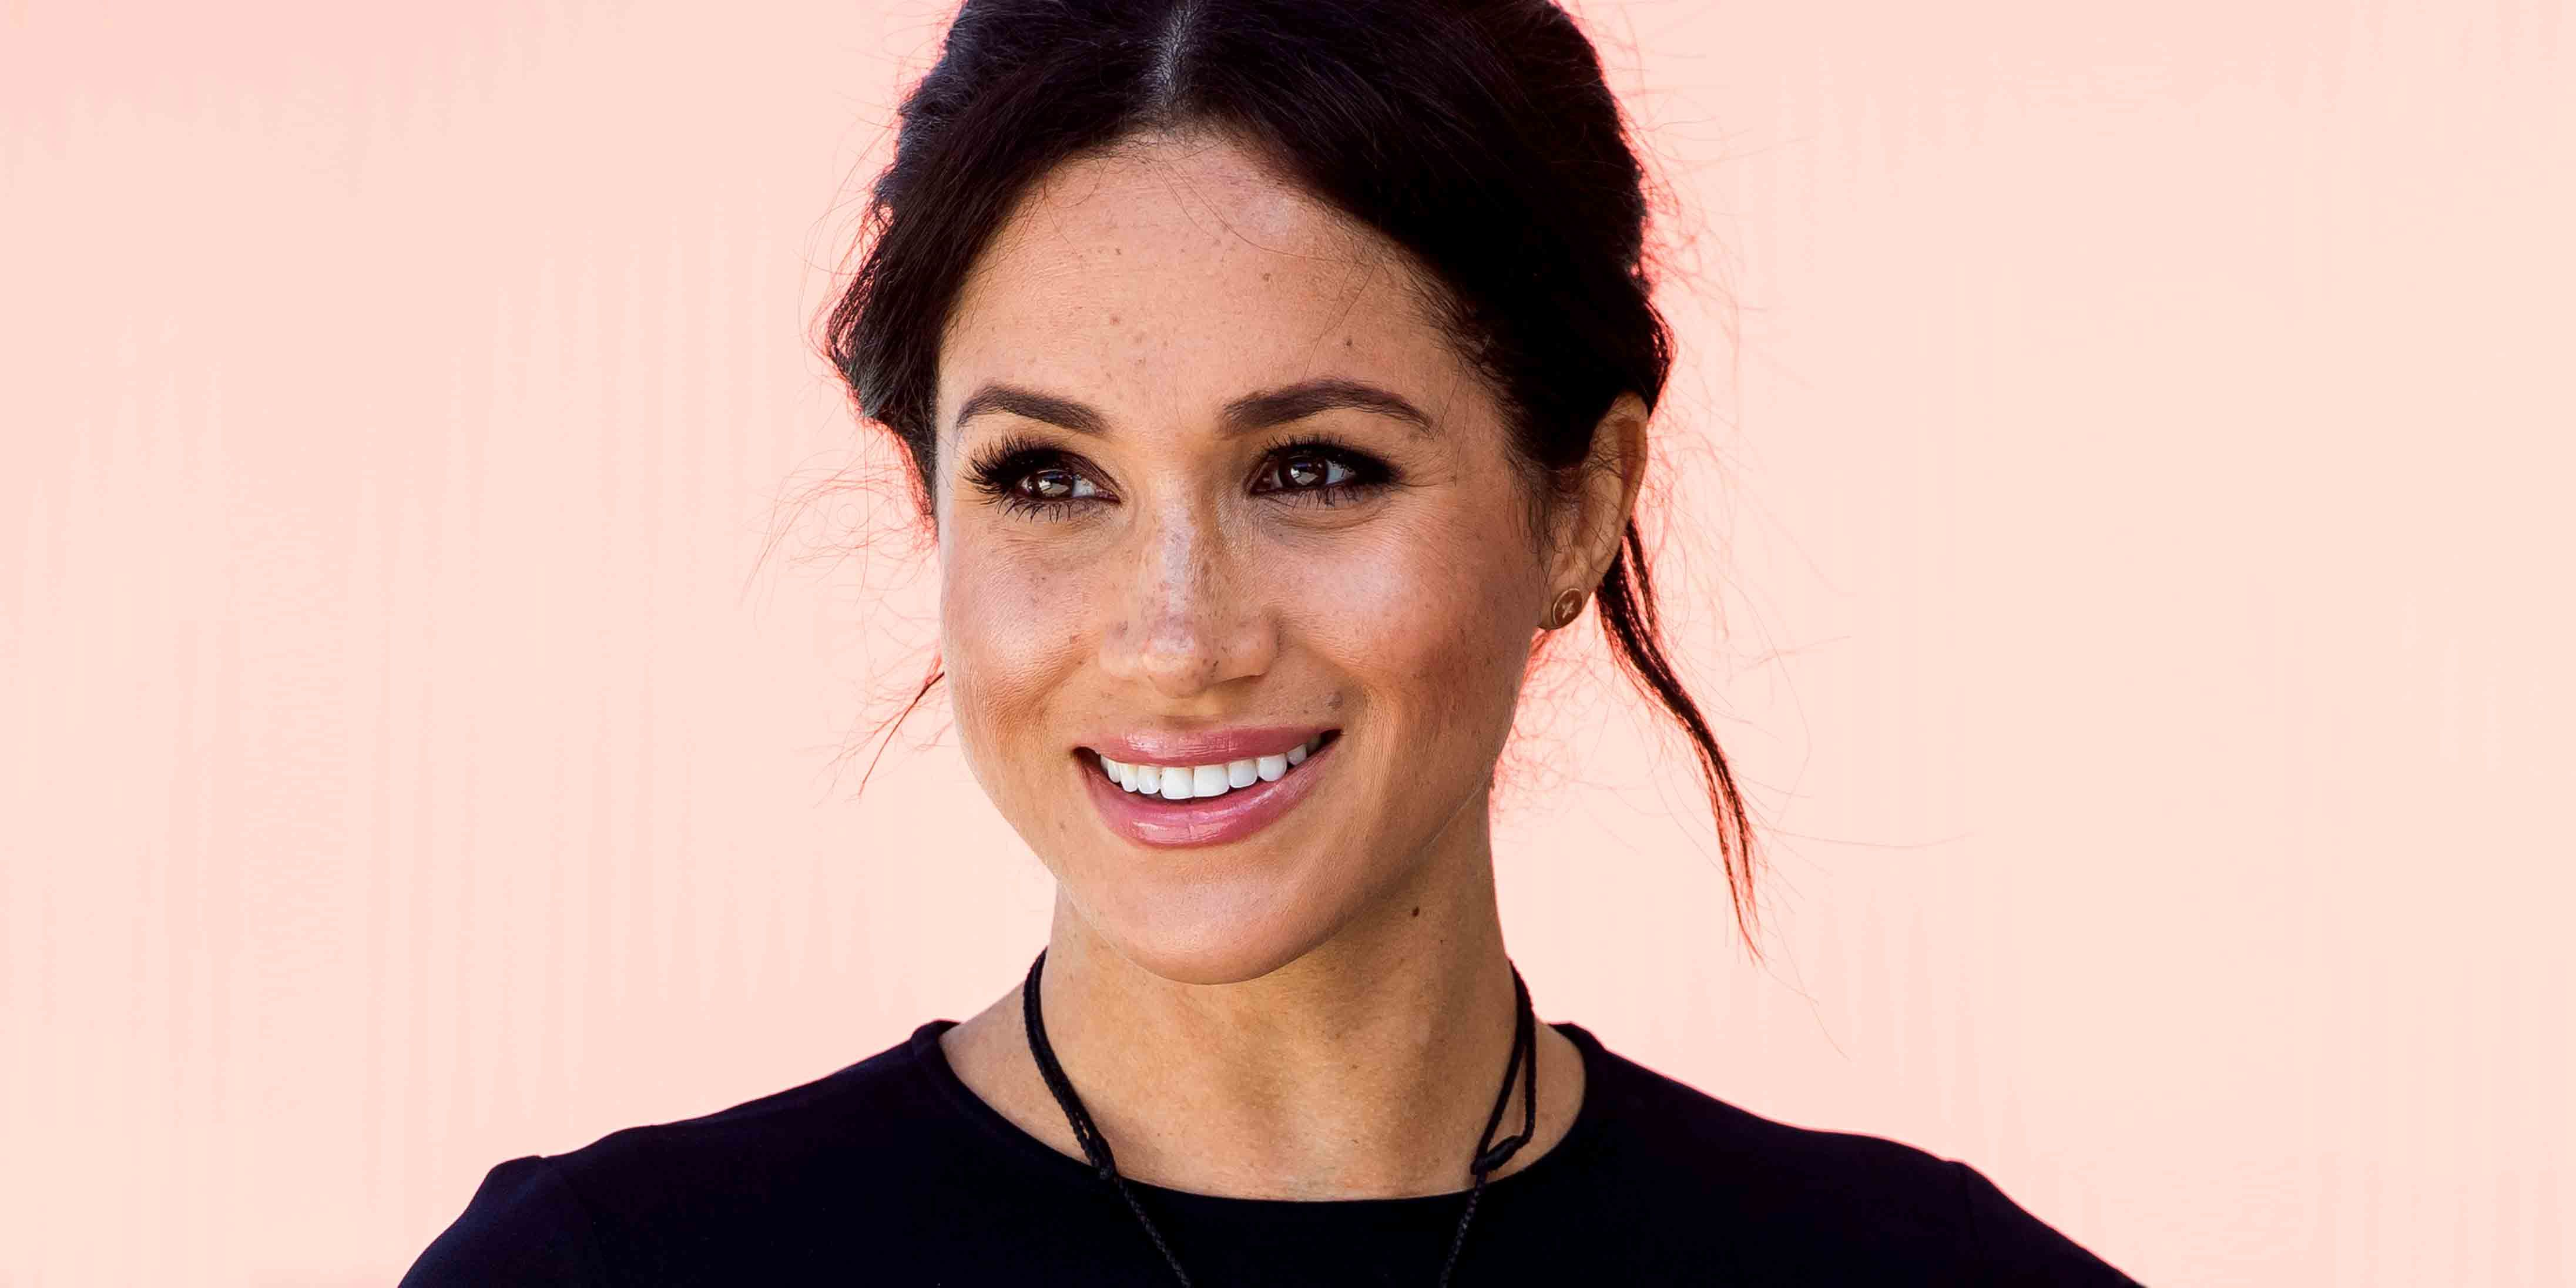 meghan markle s favorite beauty products meghan markle makeup hair and skincare products reviewed meghan markle makeup